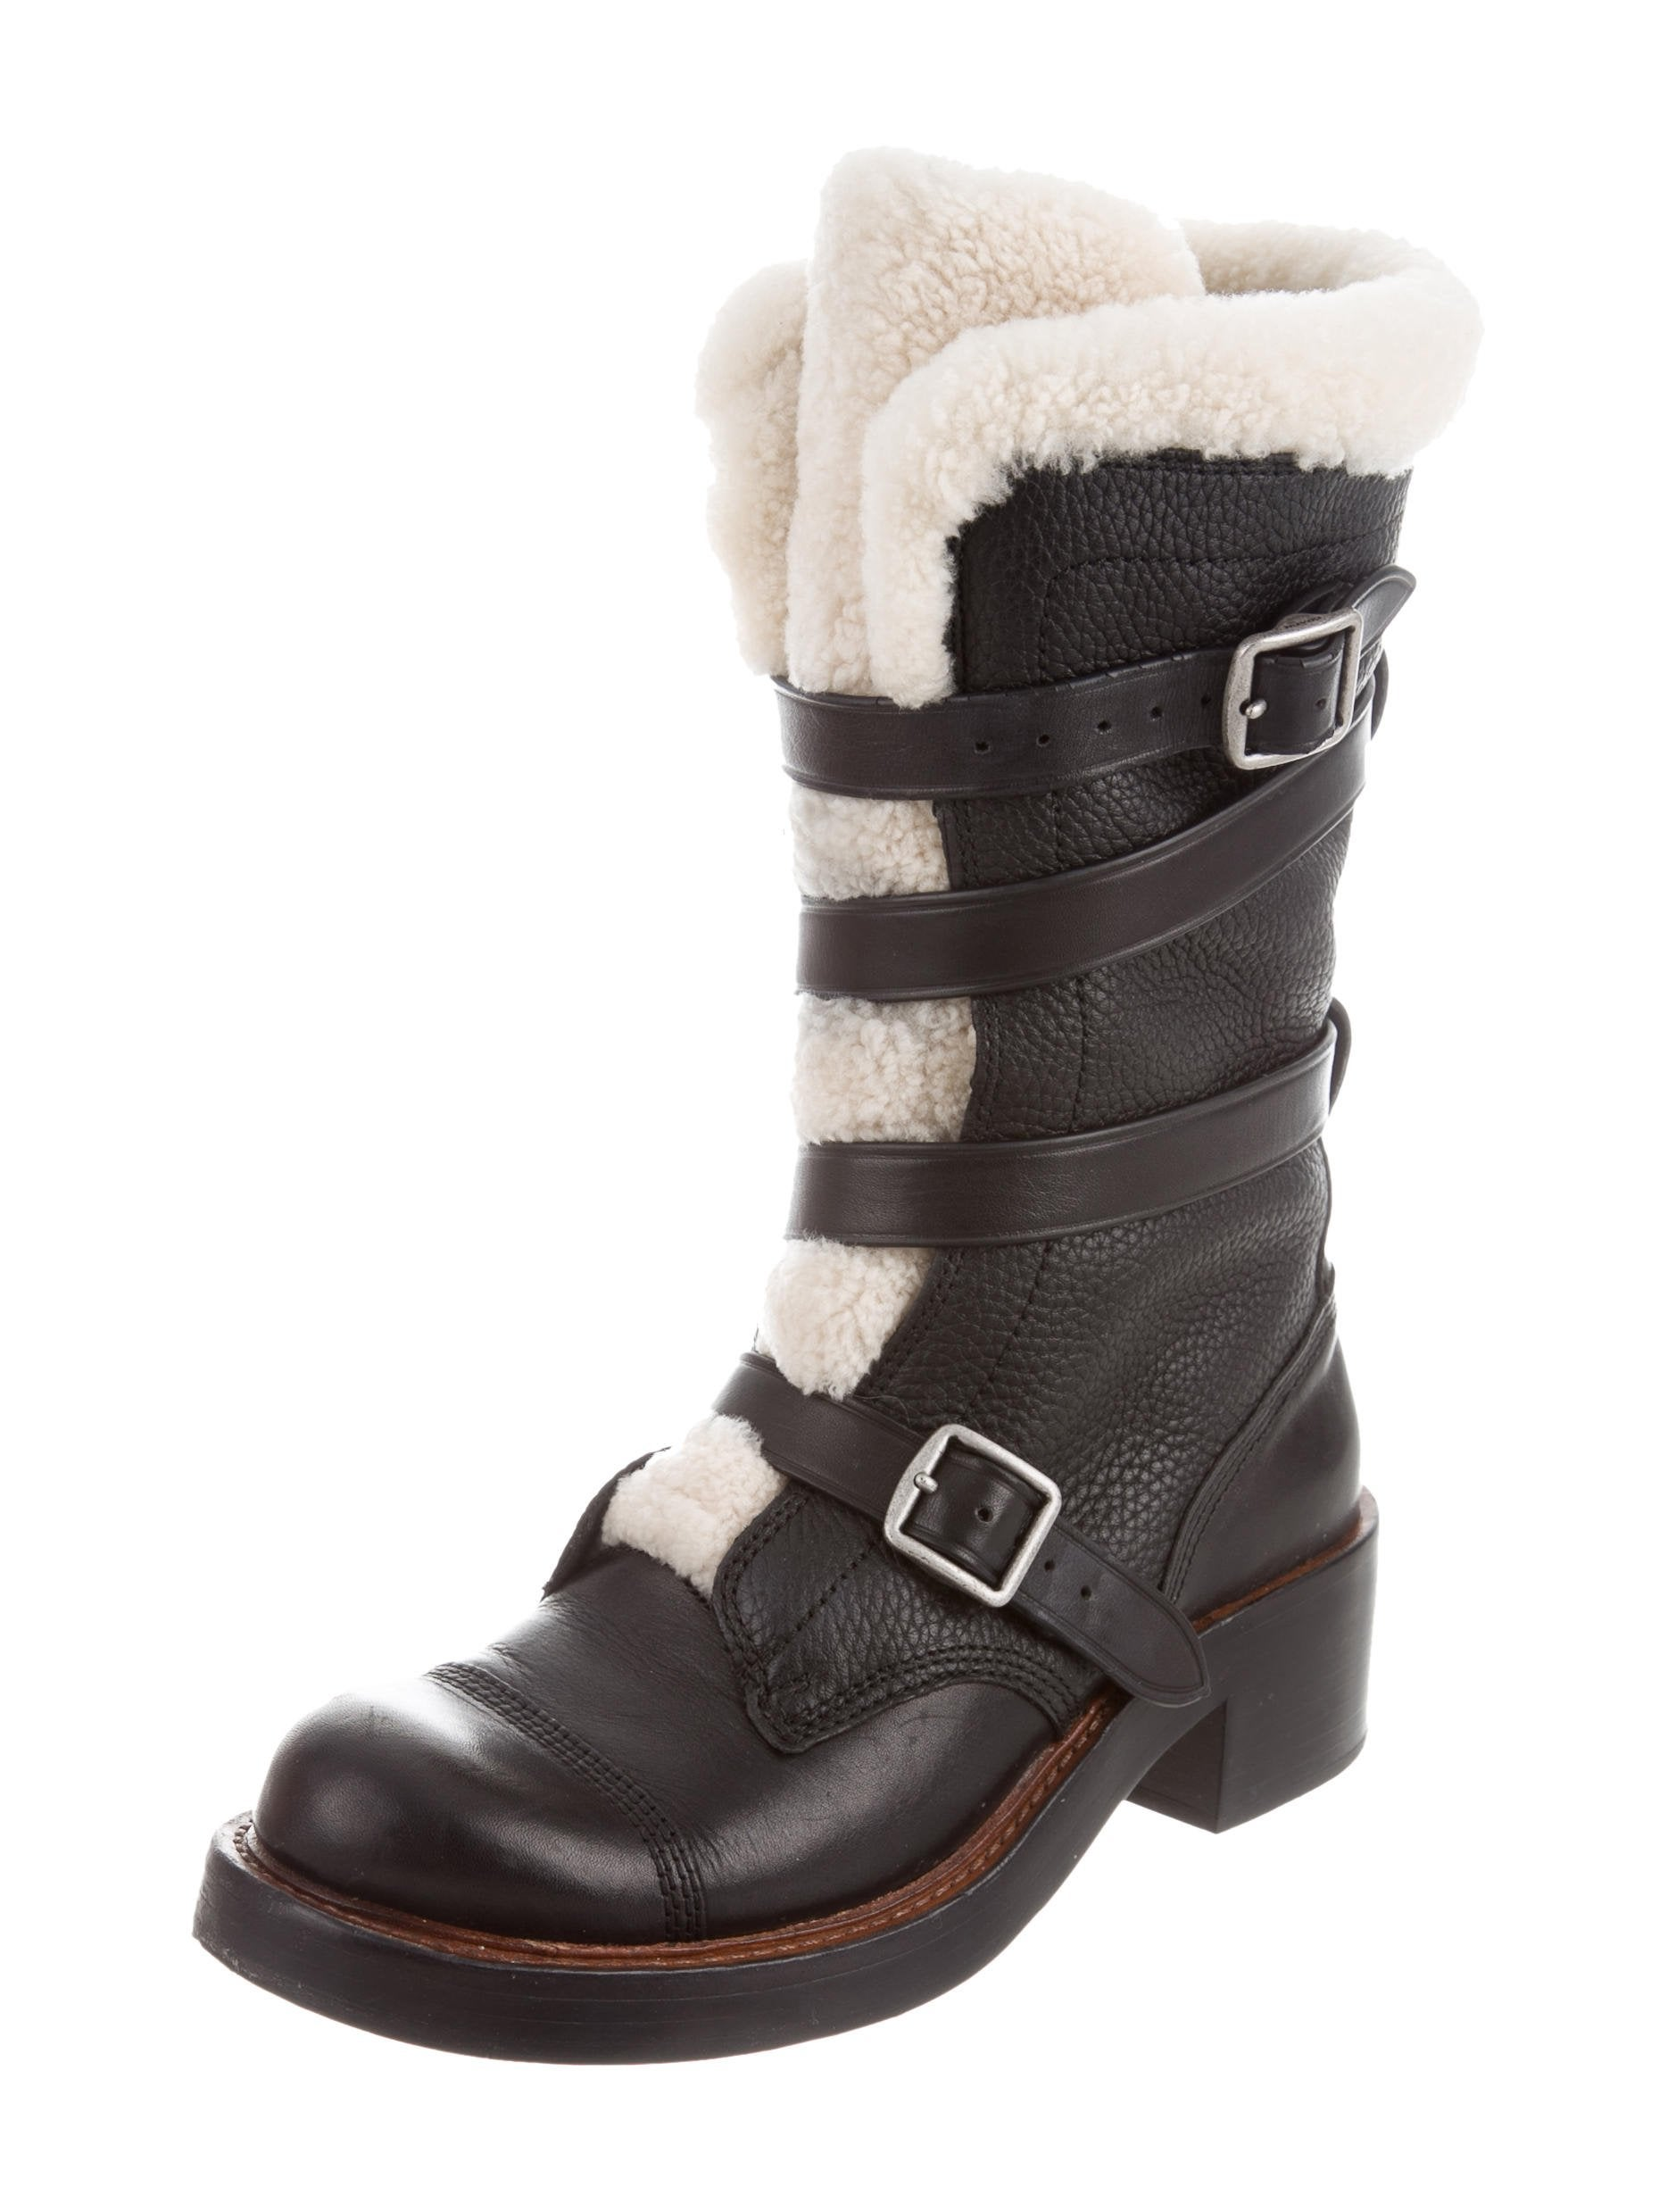 Coach Shearling-Trimmed Mid-Calf Boots 2014 new online low cost online rhU4YG